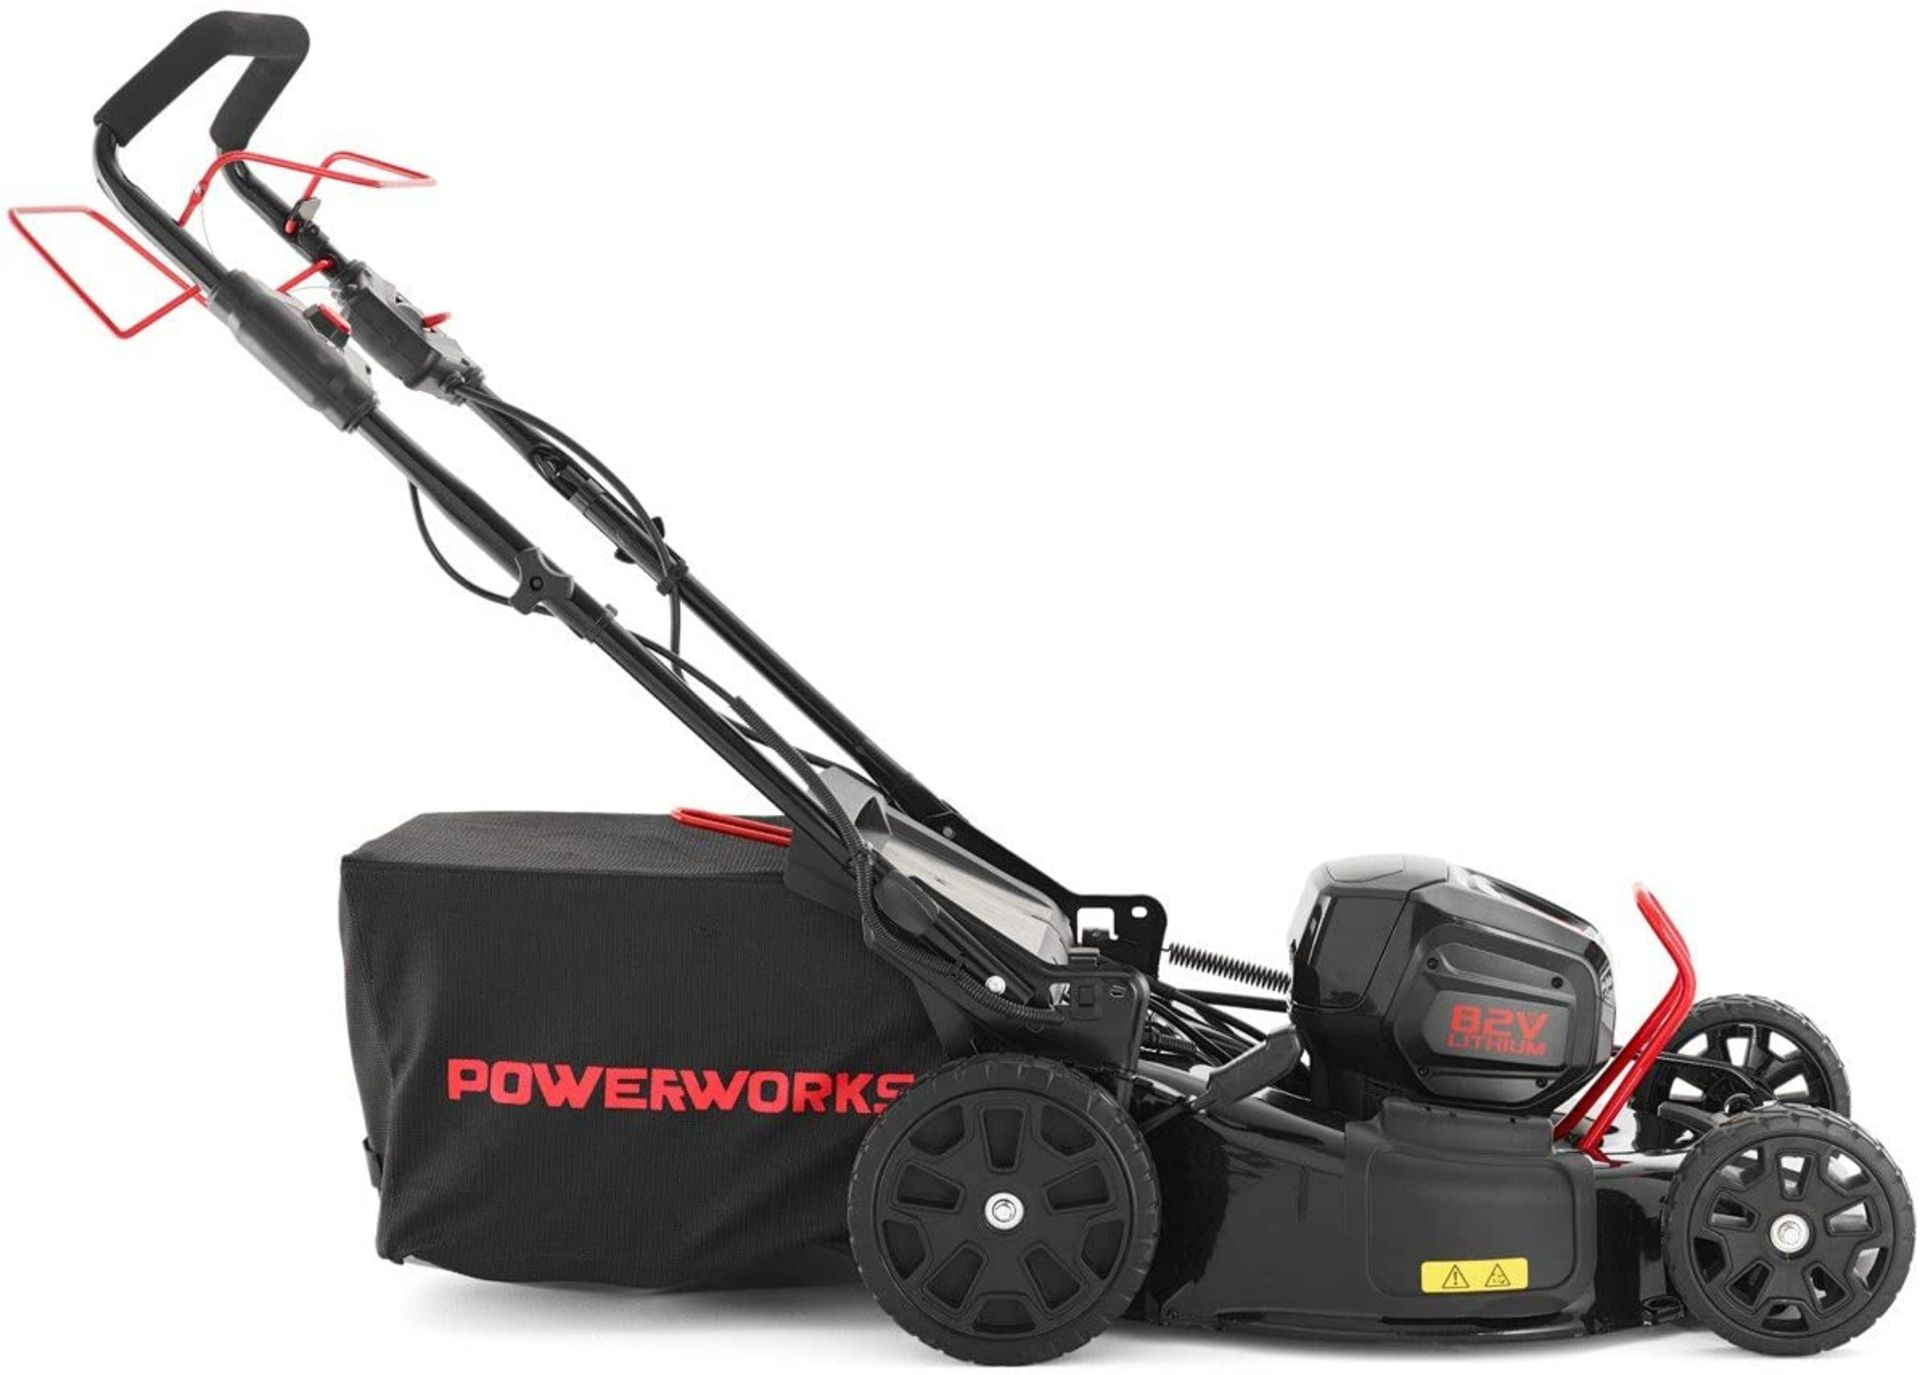 Lot 861 - 1 BOXED POWERWORKS 82V CORDLESS 46CM SELF PROPELLED LAWN MOWER RRP £599 (GENERIC IMAGE GUIDE)